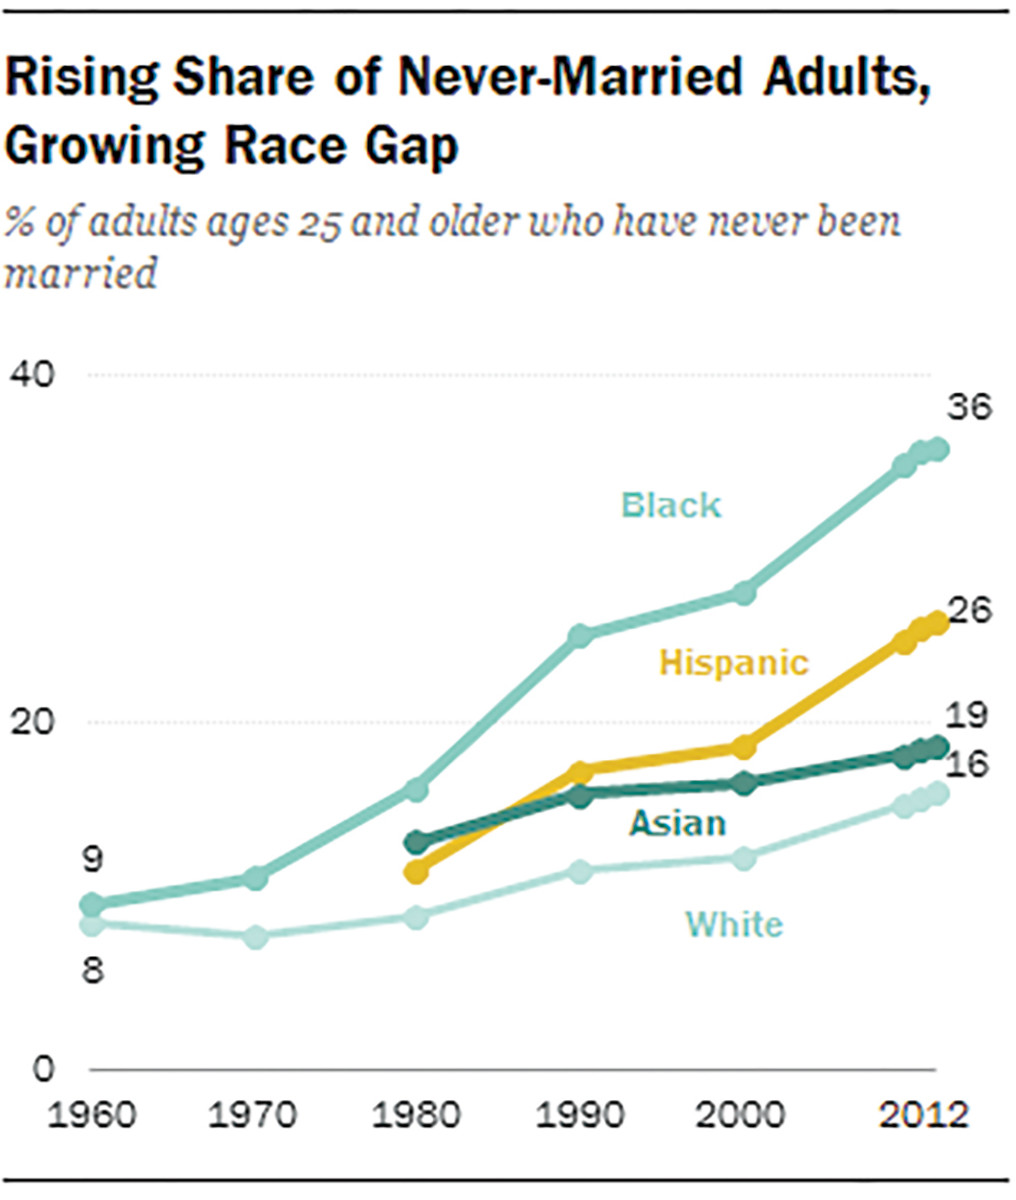 Note: Data on Hispanics and Asians prior to 1980 are not plotted given the small sample size. Source: Pew Research Center analysis of the 1960-2000 decennial census and 2000-2012 American Community Survey, Integrated Public Use Microdata Series (IPUMS). (Graph: Pew Research Center)